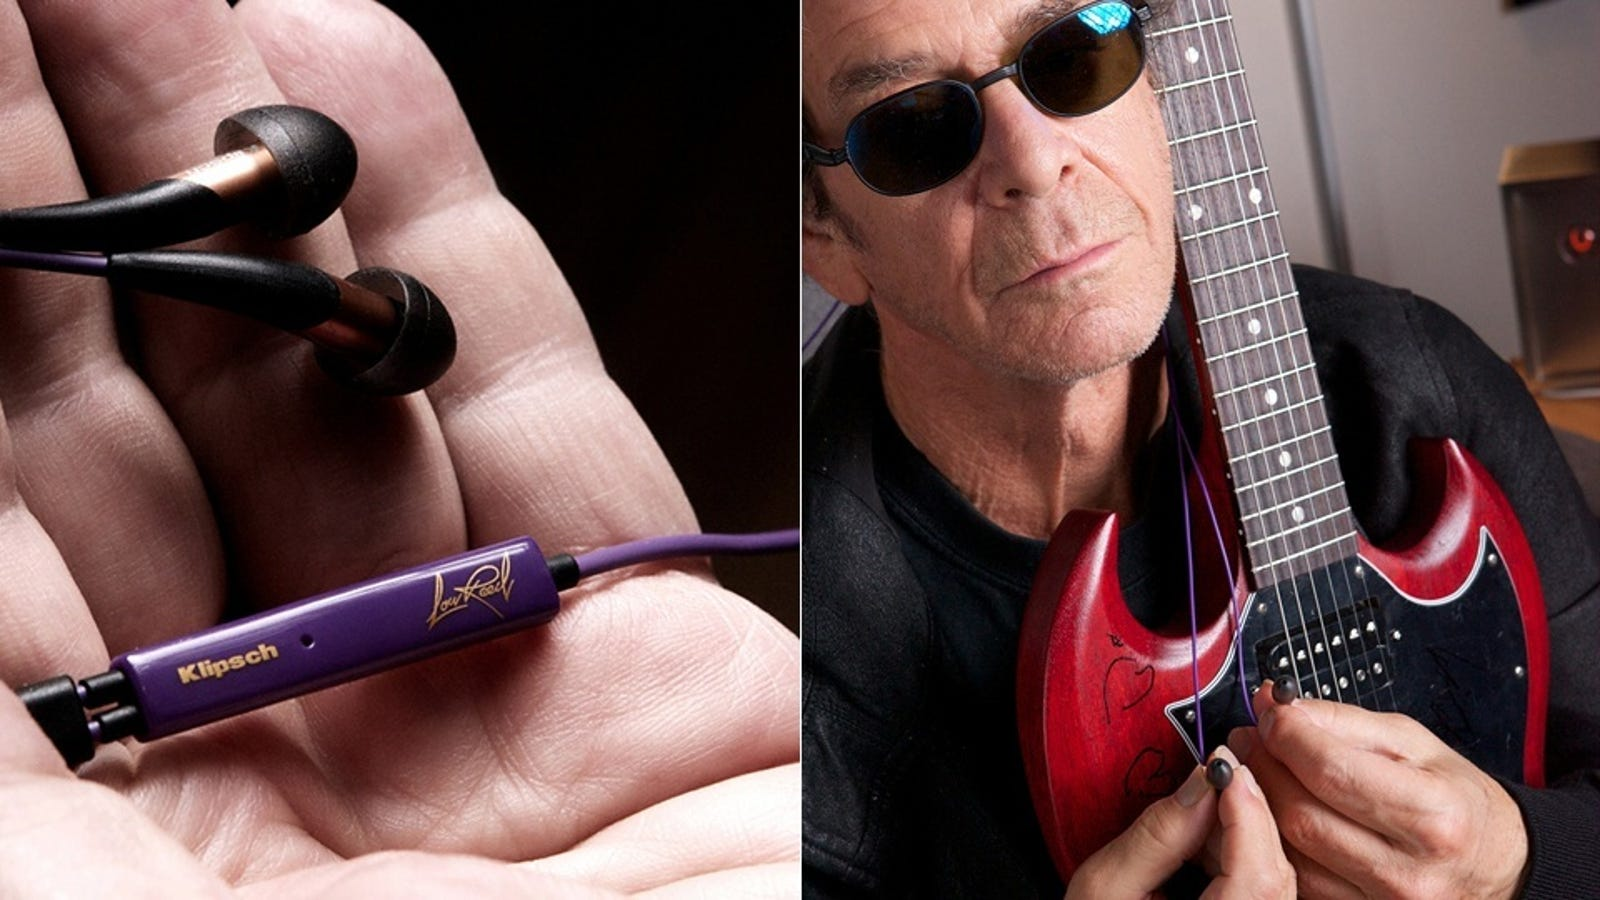 Noise cancelling earbuds concert - Save Lou Reed!